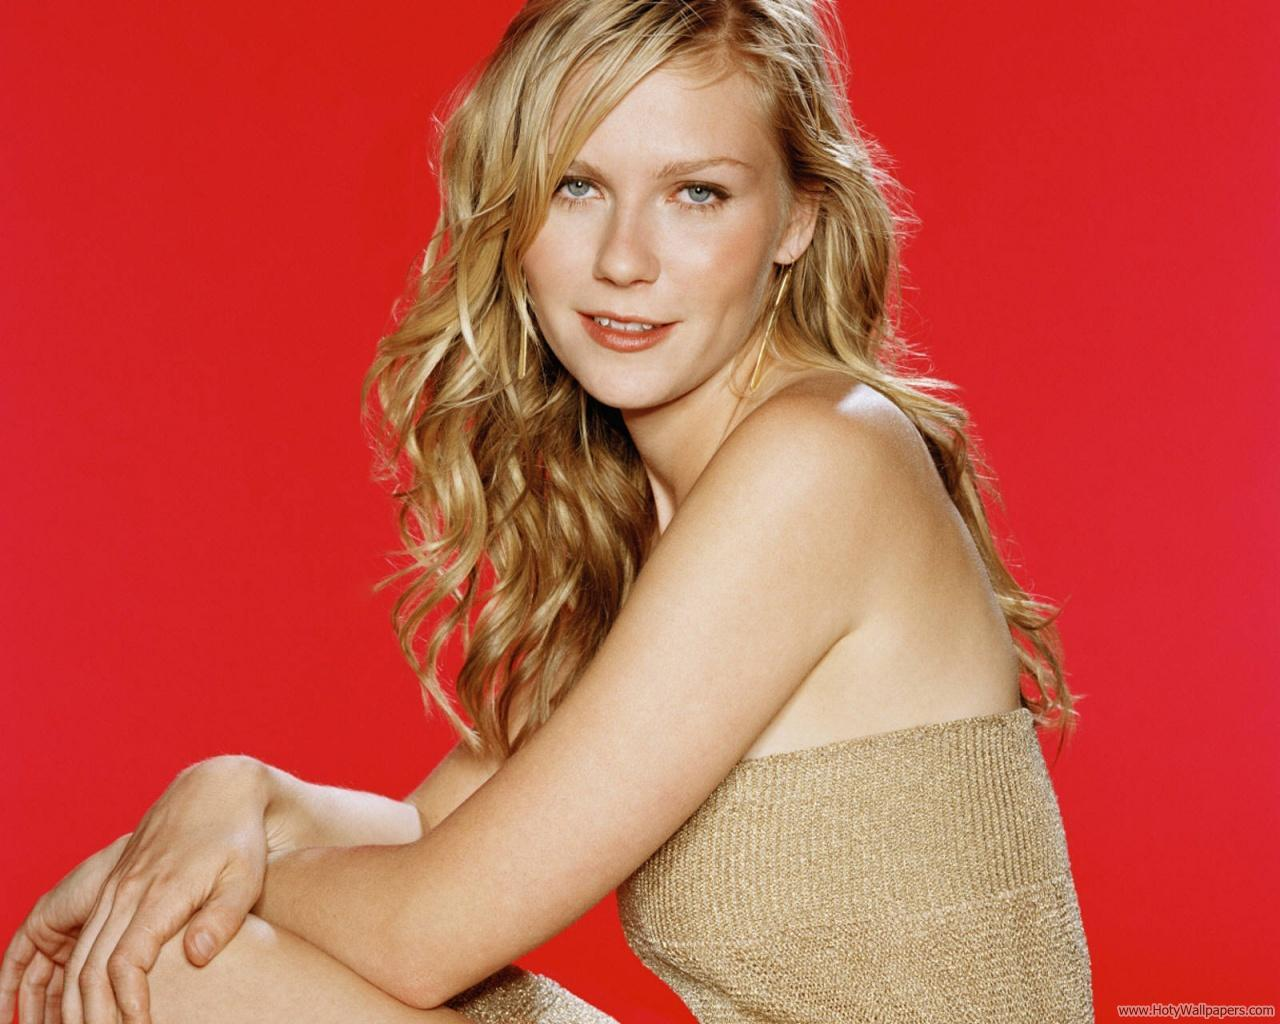 http://2.bp.blogspot.com/-18gHK1gW6xo/To3S0CtaBBI/AAAAAAAALoQ/tC4WHHzFa5M/s1600/kirsten_dunst_beautiful_wallpaper.jpg